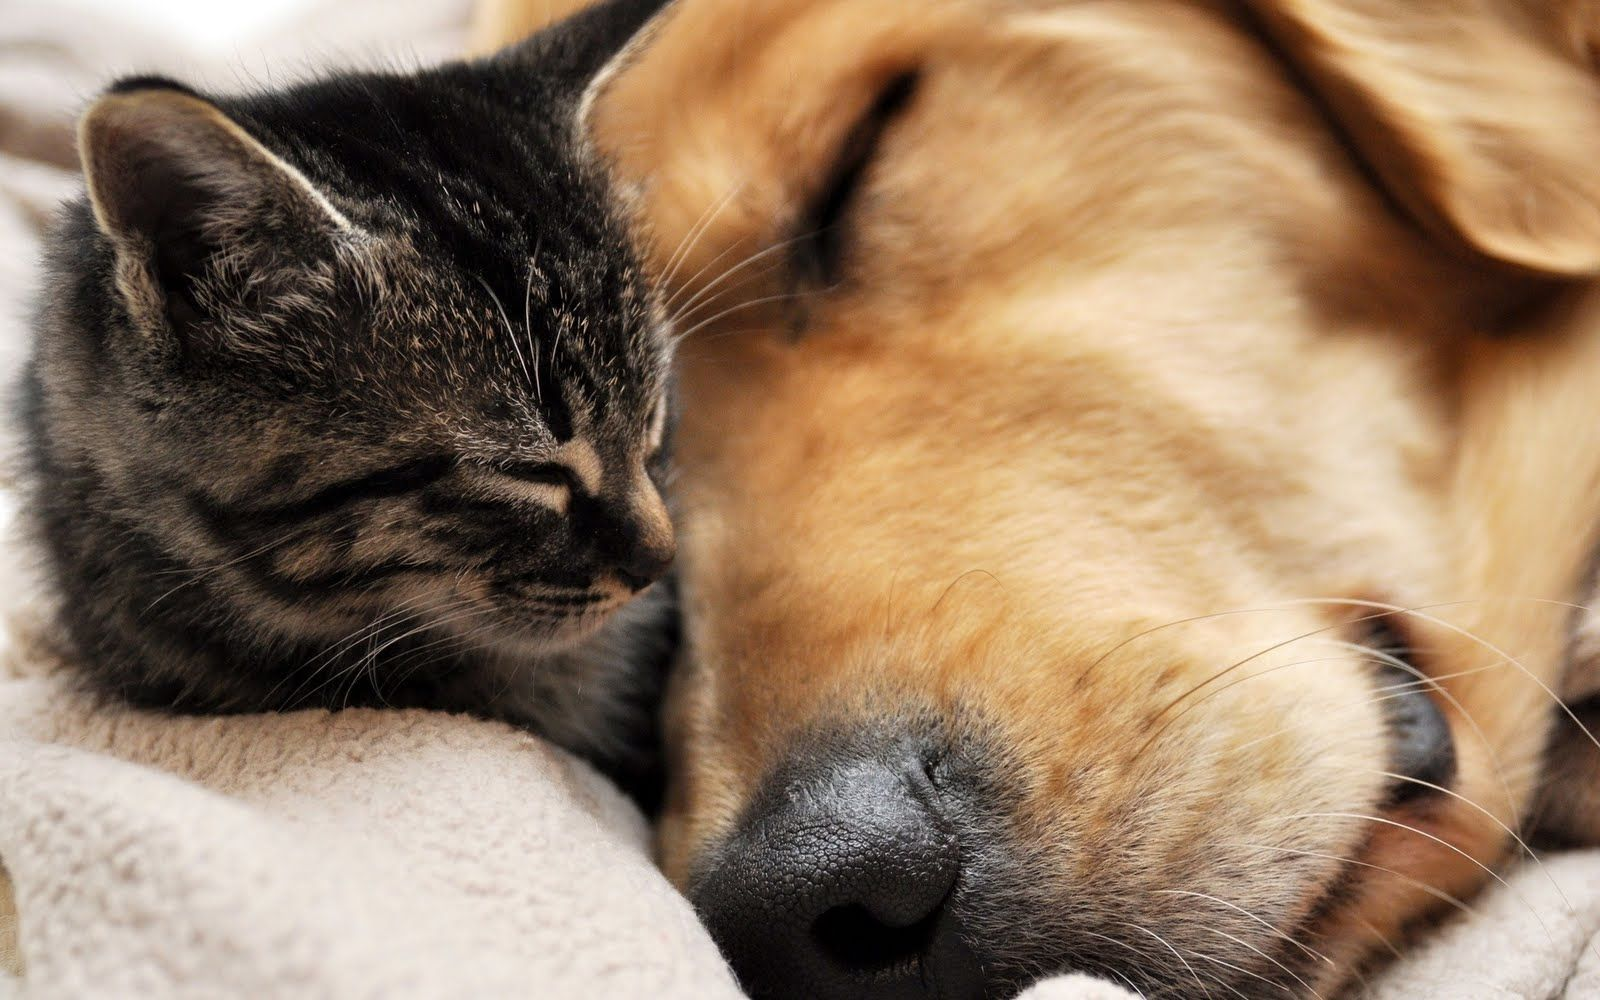 Wallpapers Hd Cat And Dog Images Dogs Cats Wallpaper